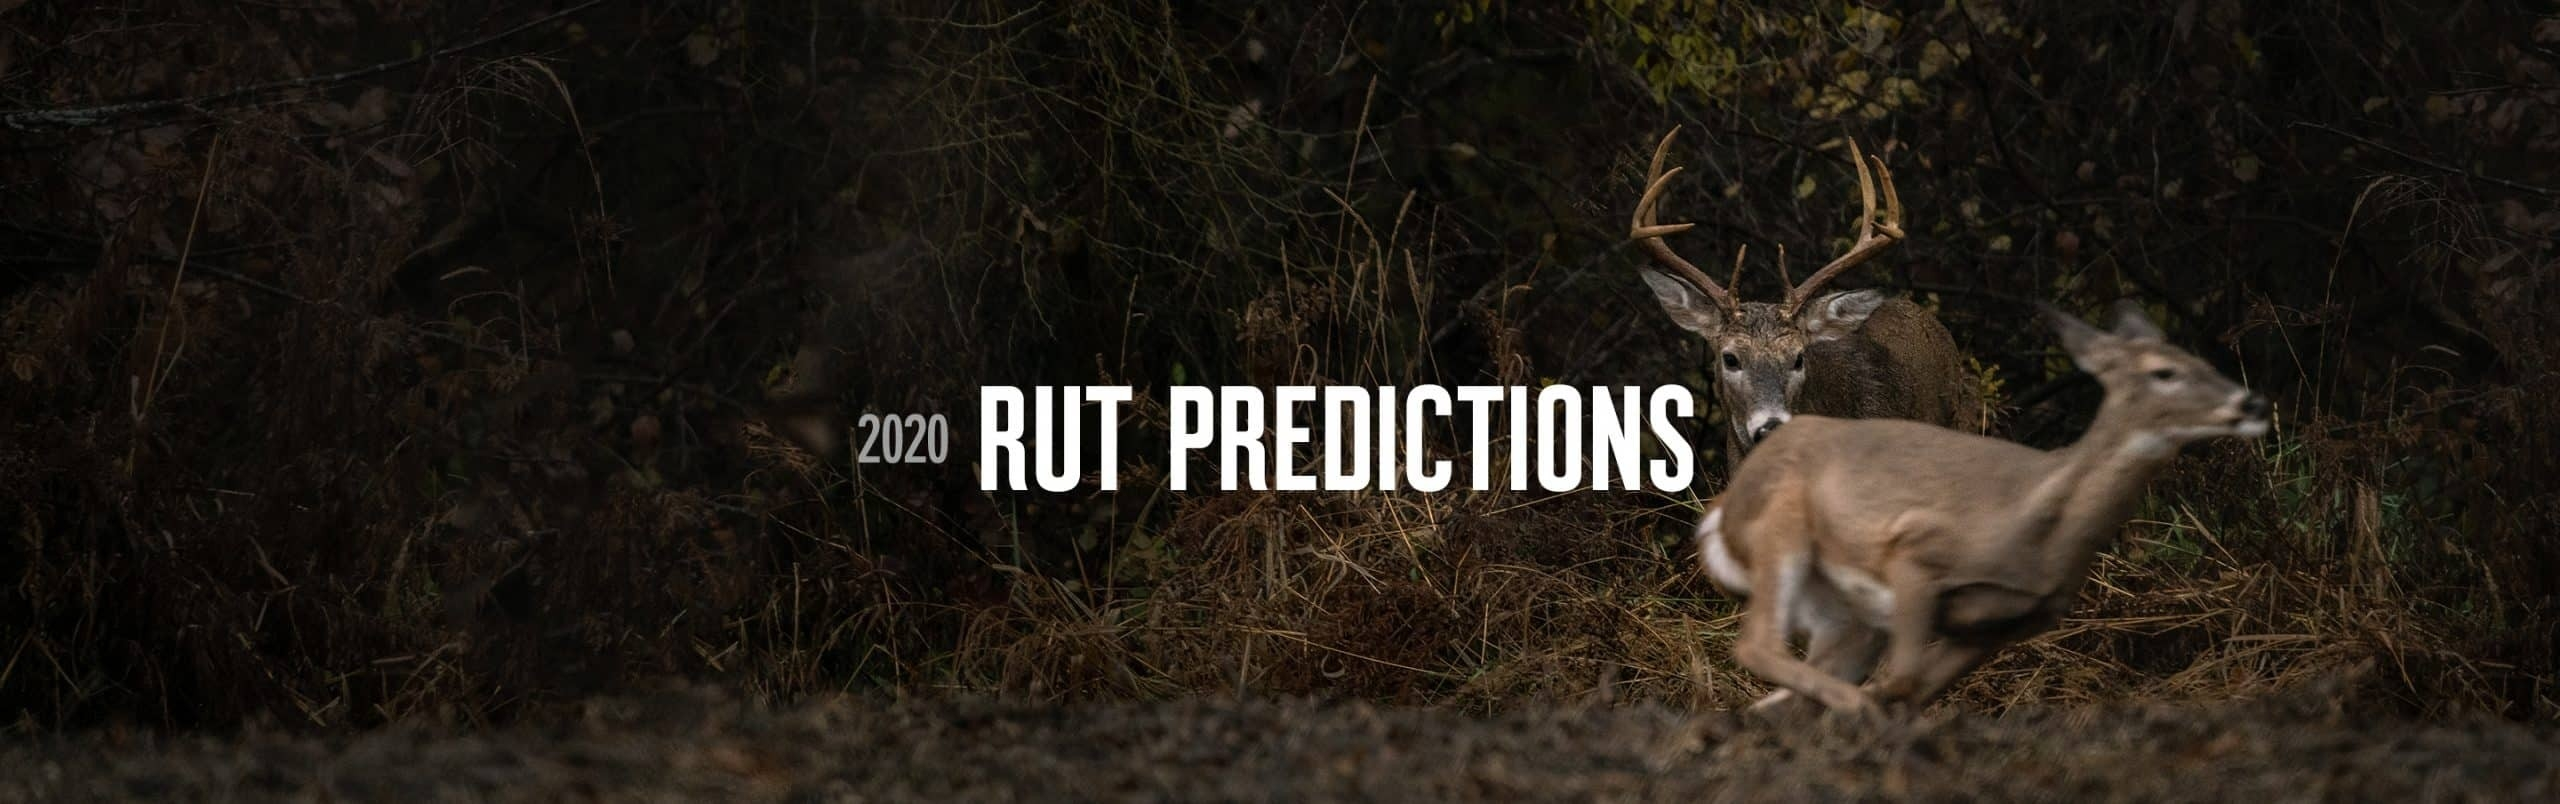 2020 Rut Predictions | Onx Maps  2021 Rut Preidction For Pa